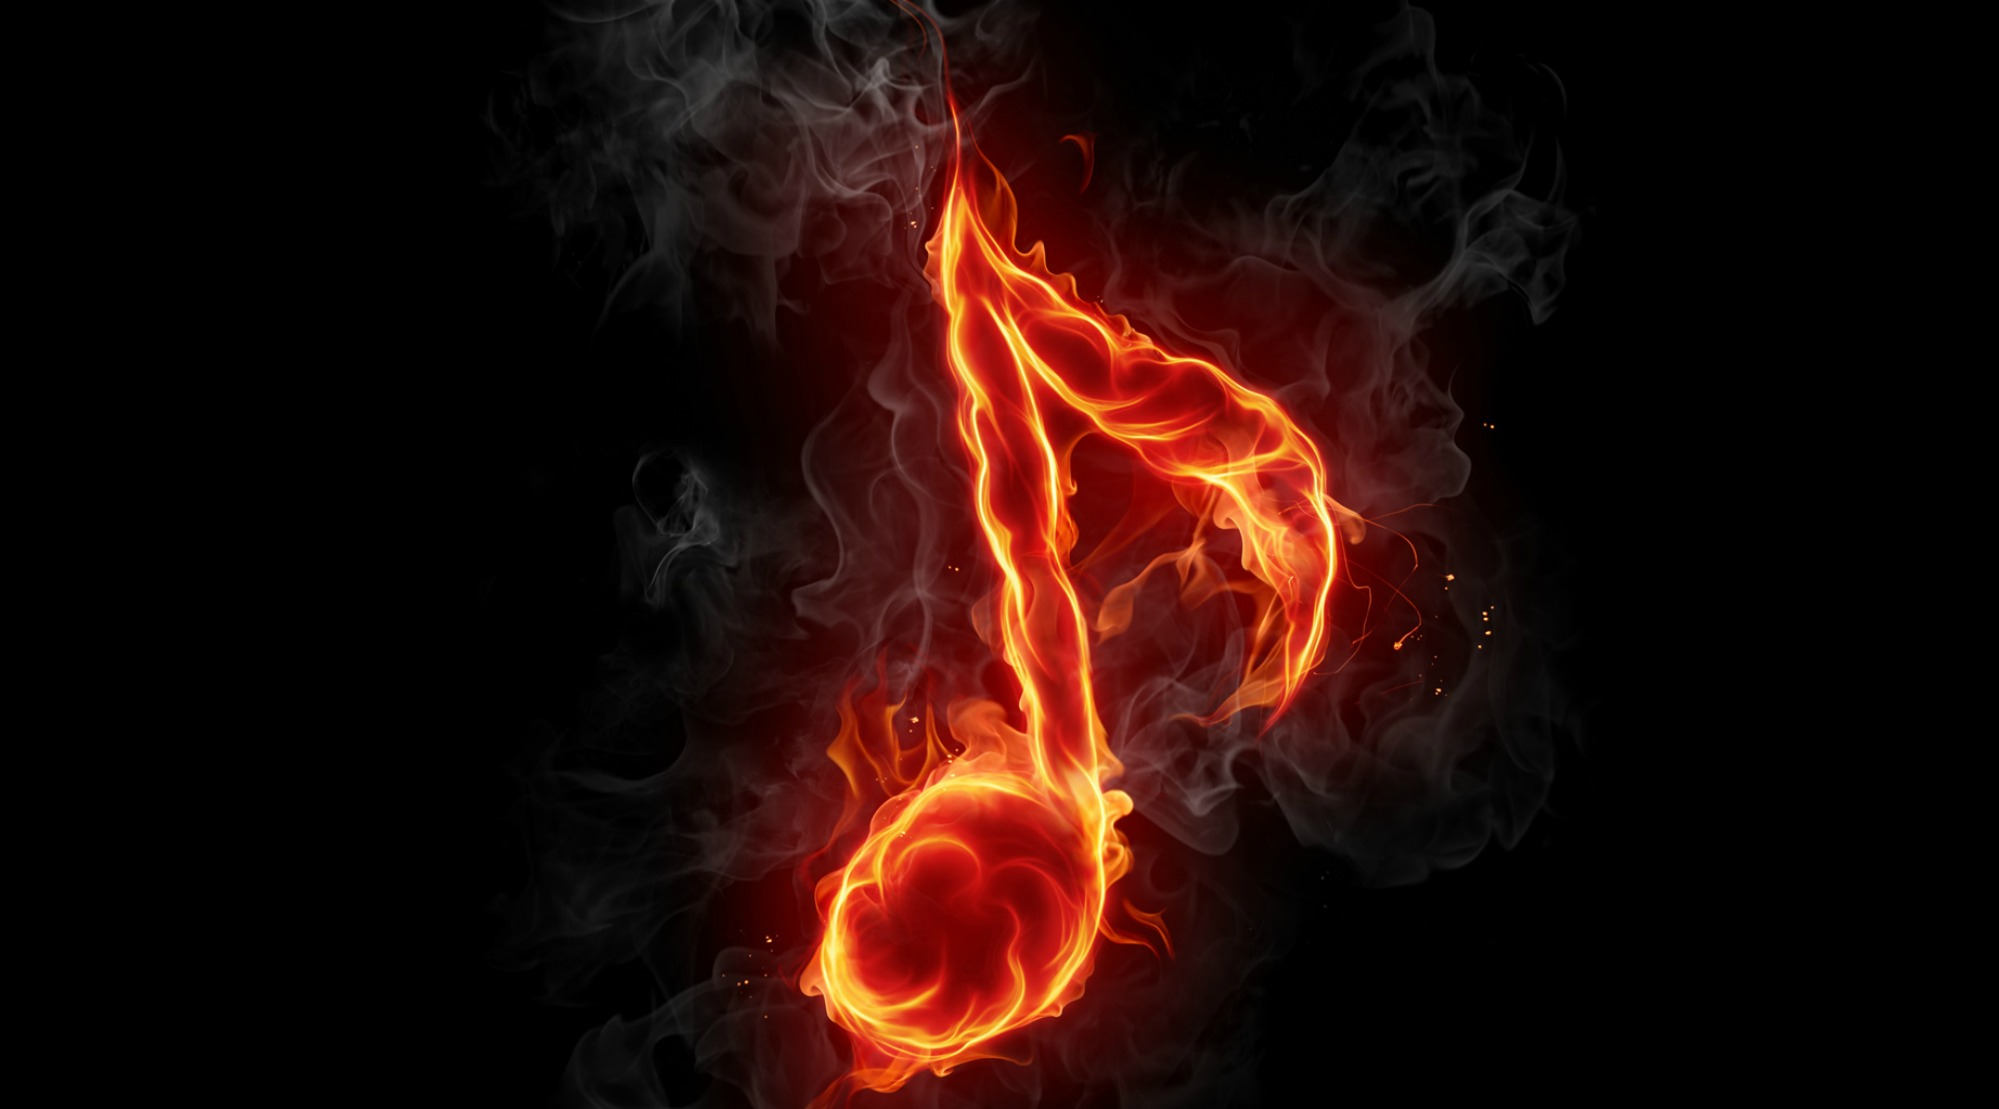 Fire Music Wallpaper